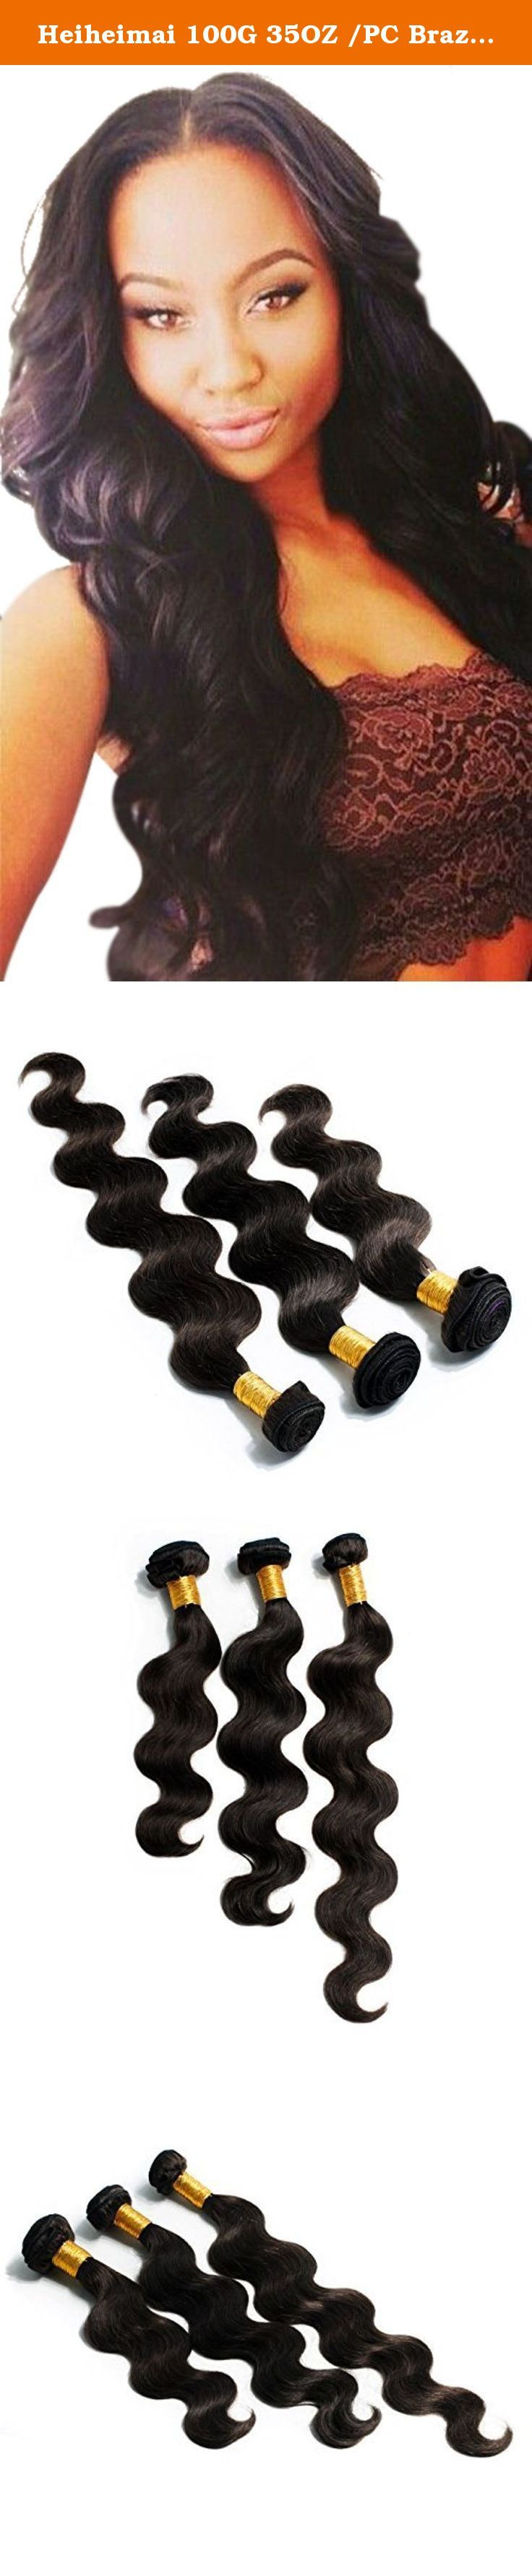 """Heiheimai 100G 35OZ /PC Brazilian Kinky Curl Human Hair Pack of 3 (16""""18""""20"""", Natural#). 1.100% true hair weave, no mixed 2.Full cuticle, softest and smoothest, no tangle 3.Our company have different grades hair 4.Soft, popular, fashion, and slim and so on are some advantage of product ."""